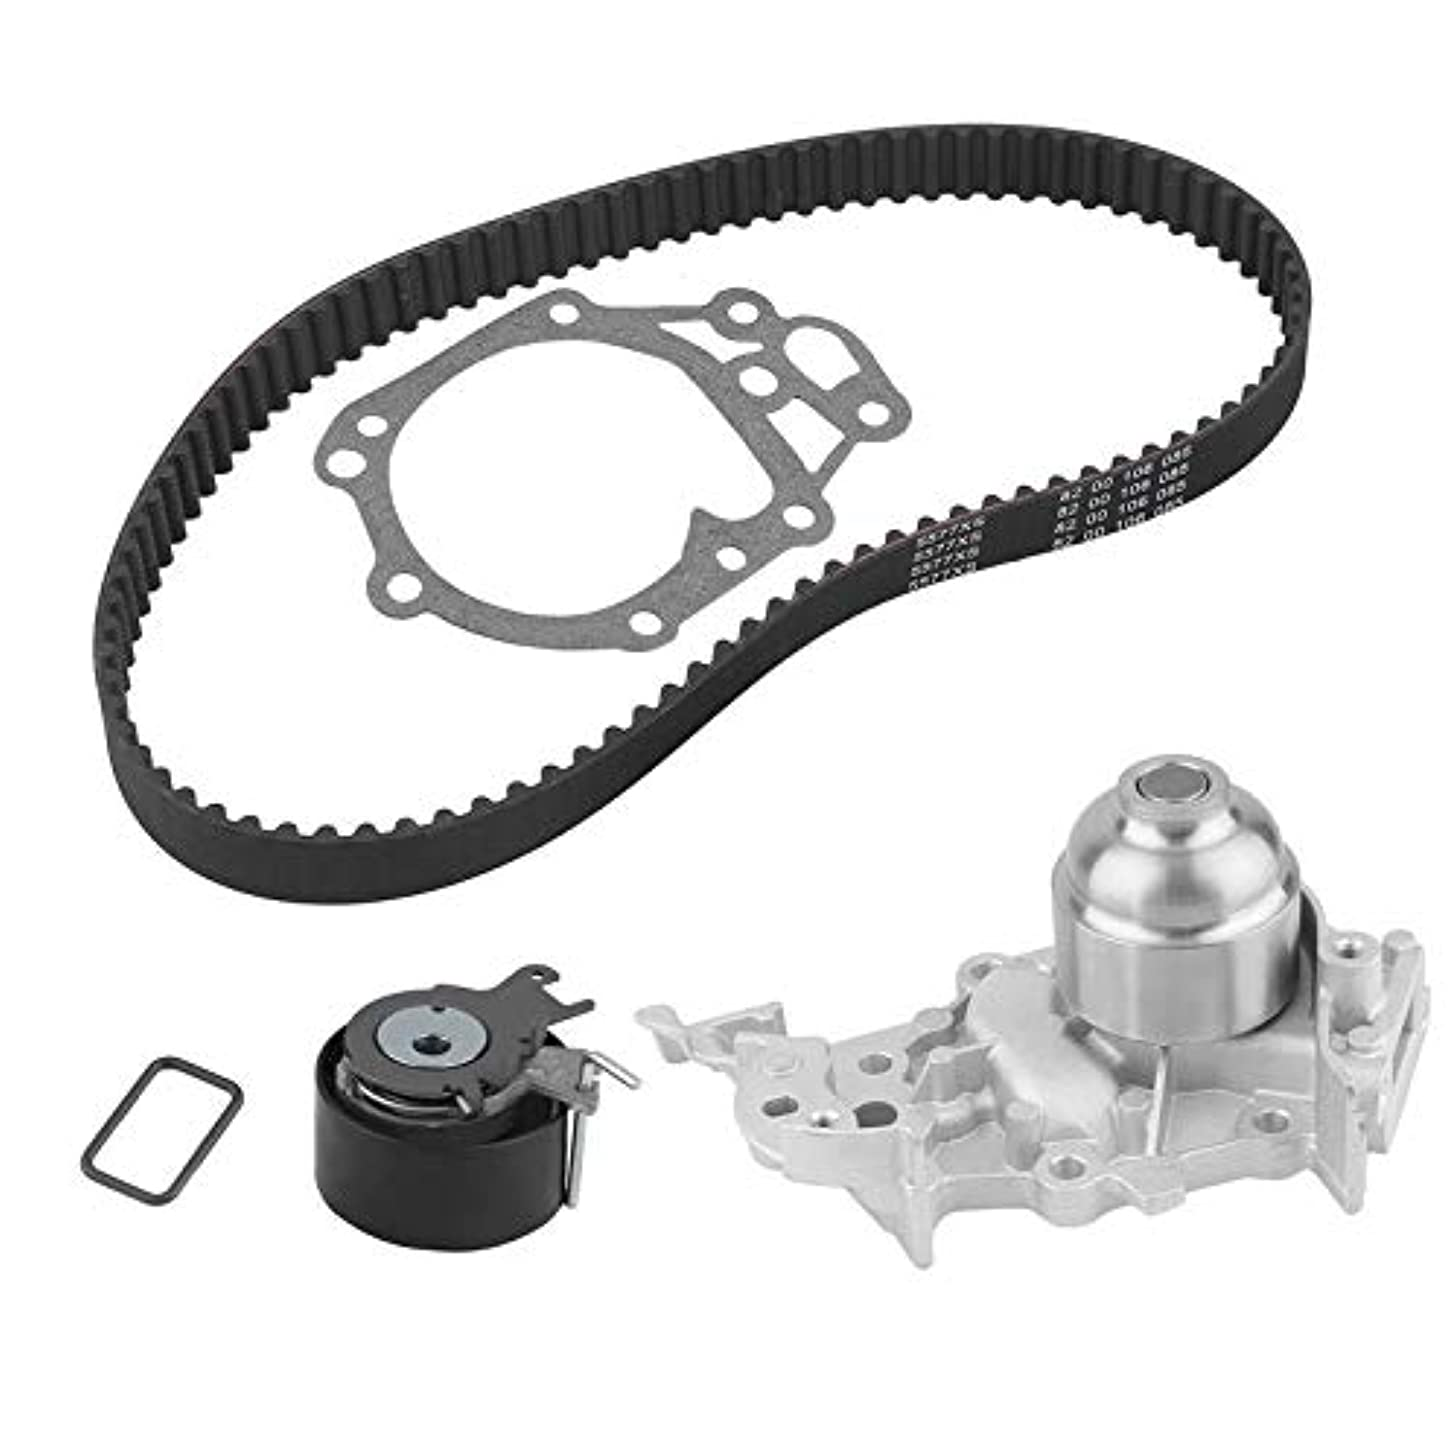 Car Engine Timing Belt Kit Cambelt Timing Suit With Water Pump Tensioner Pulley For Renault Clio MK II III 1.2 16V